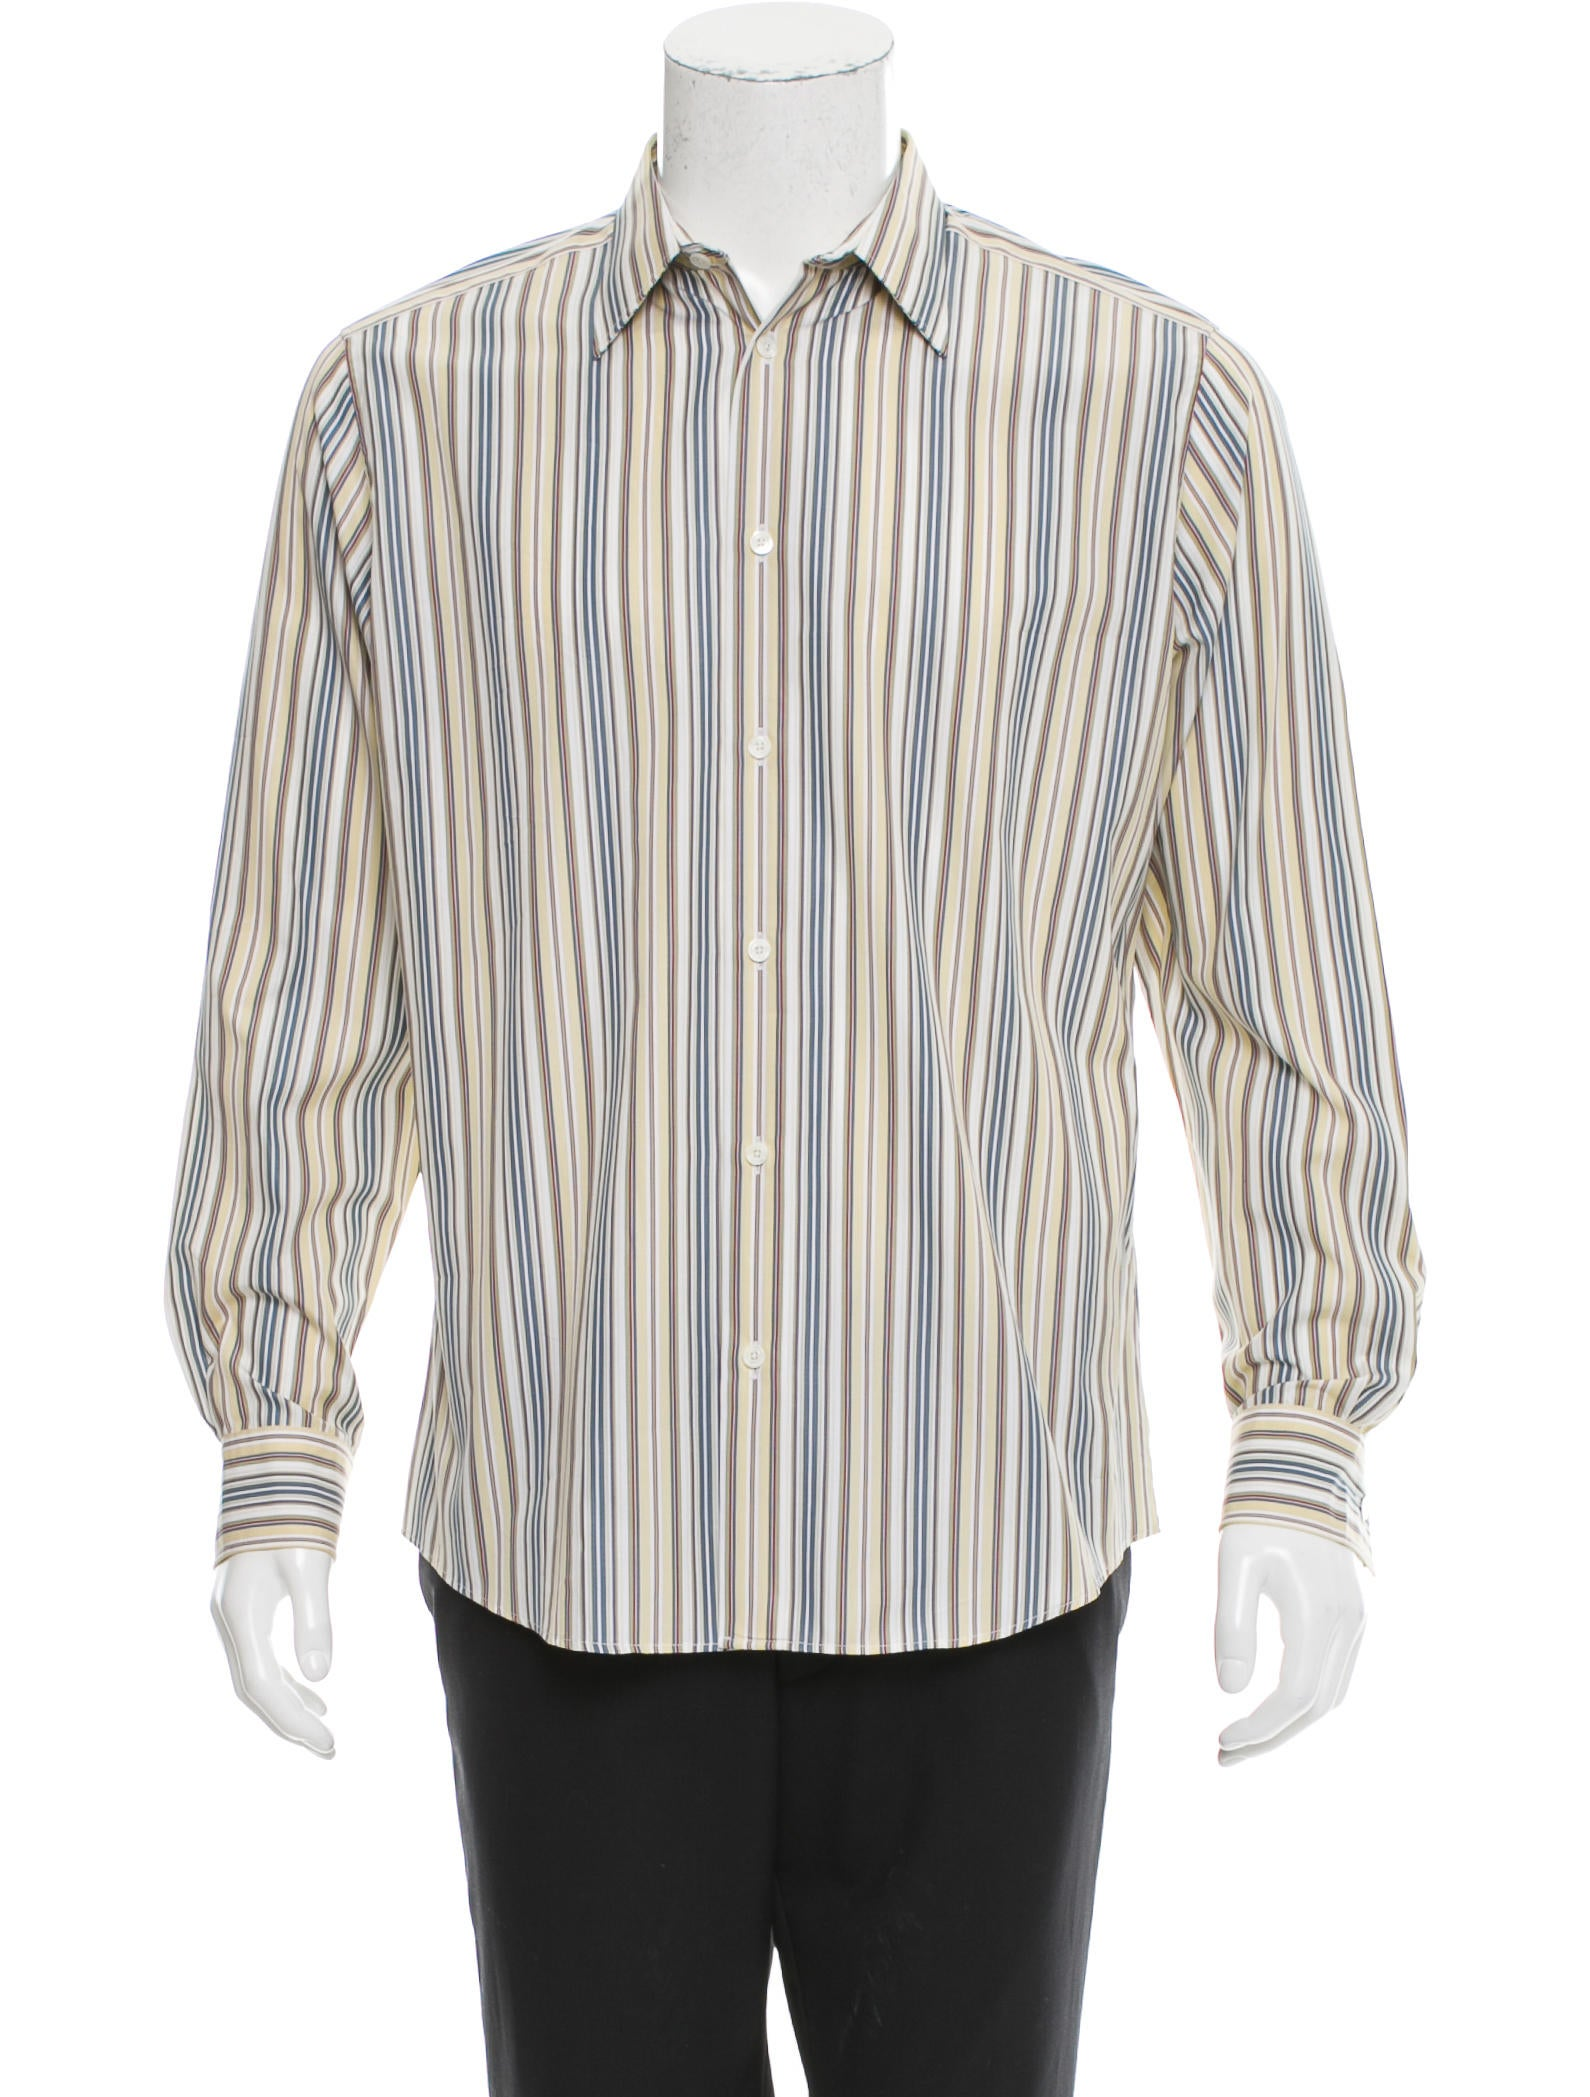 Herm s striped button up shirt clothing her104843 for Striped button up shirt mens